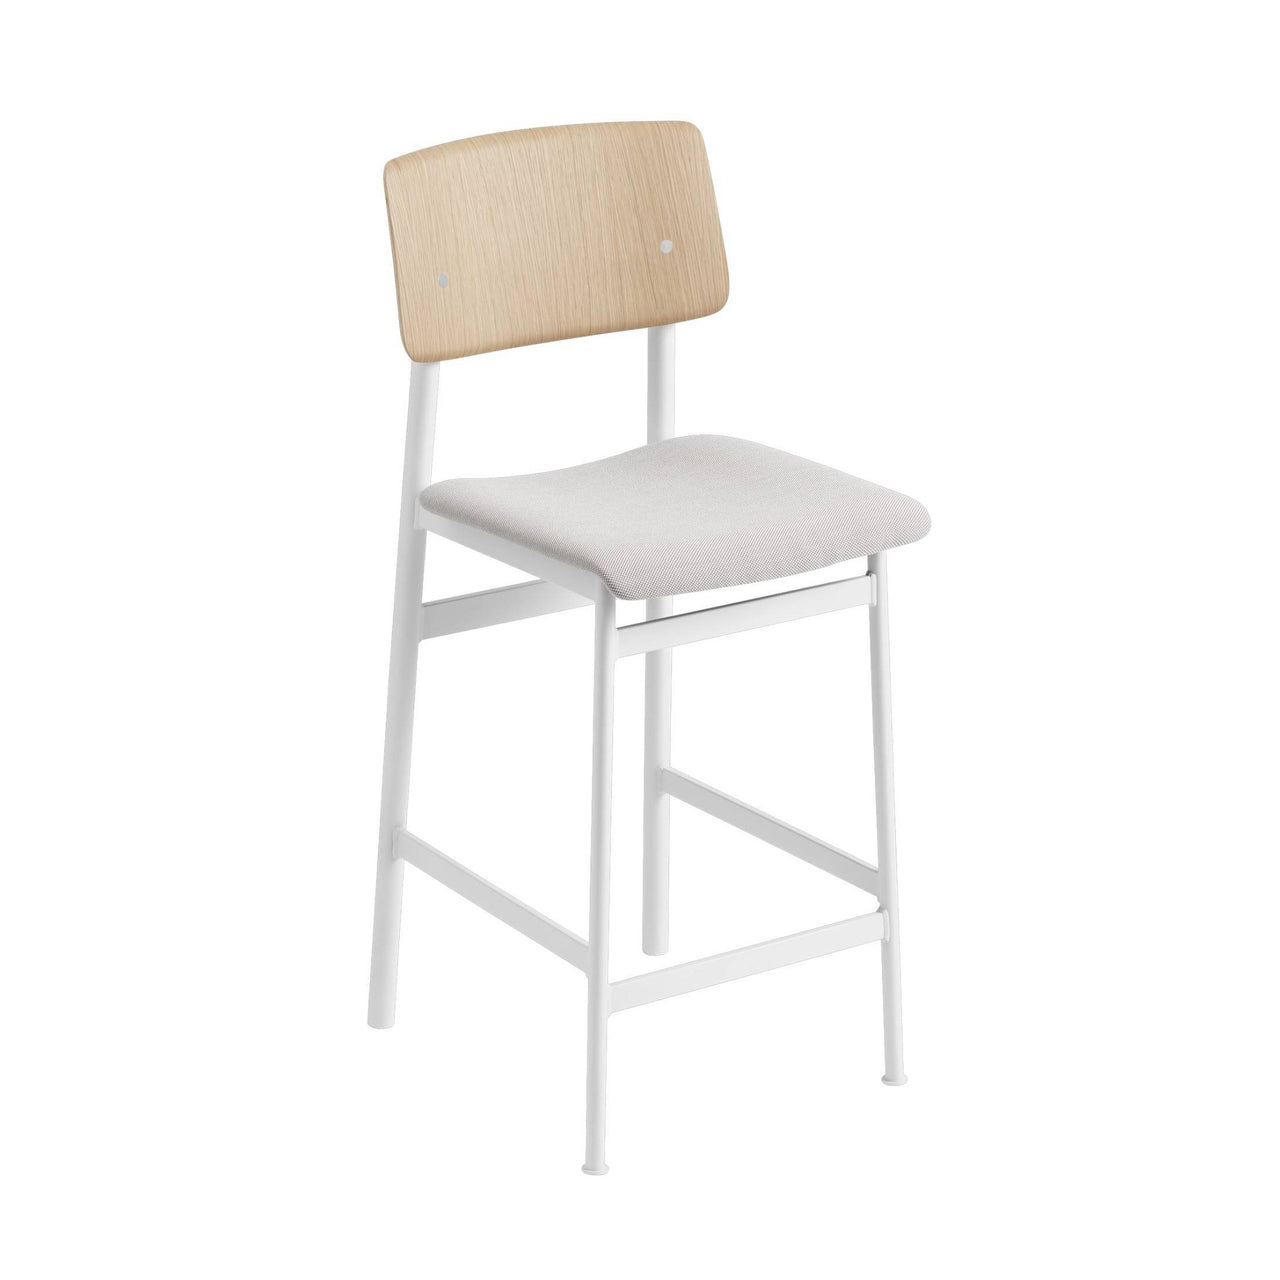 Loft Counter Stool Upholstered: White Base + Oak